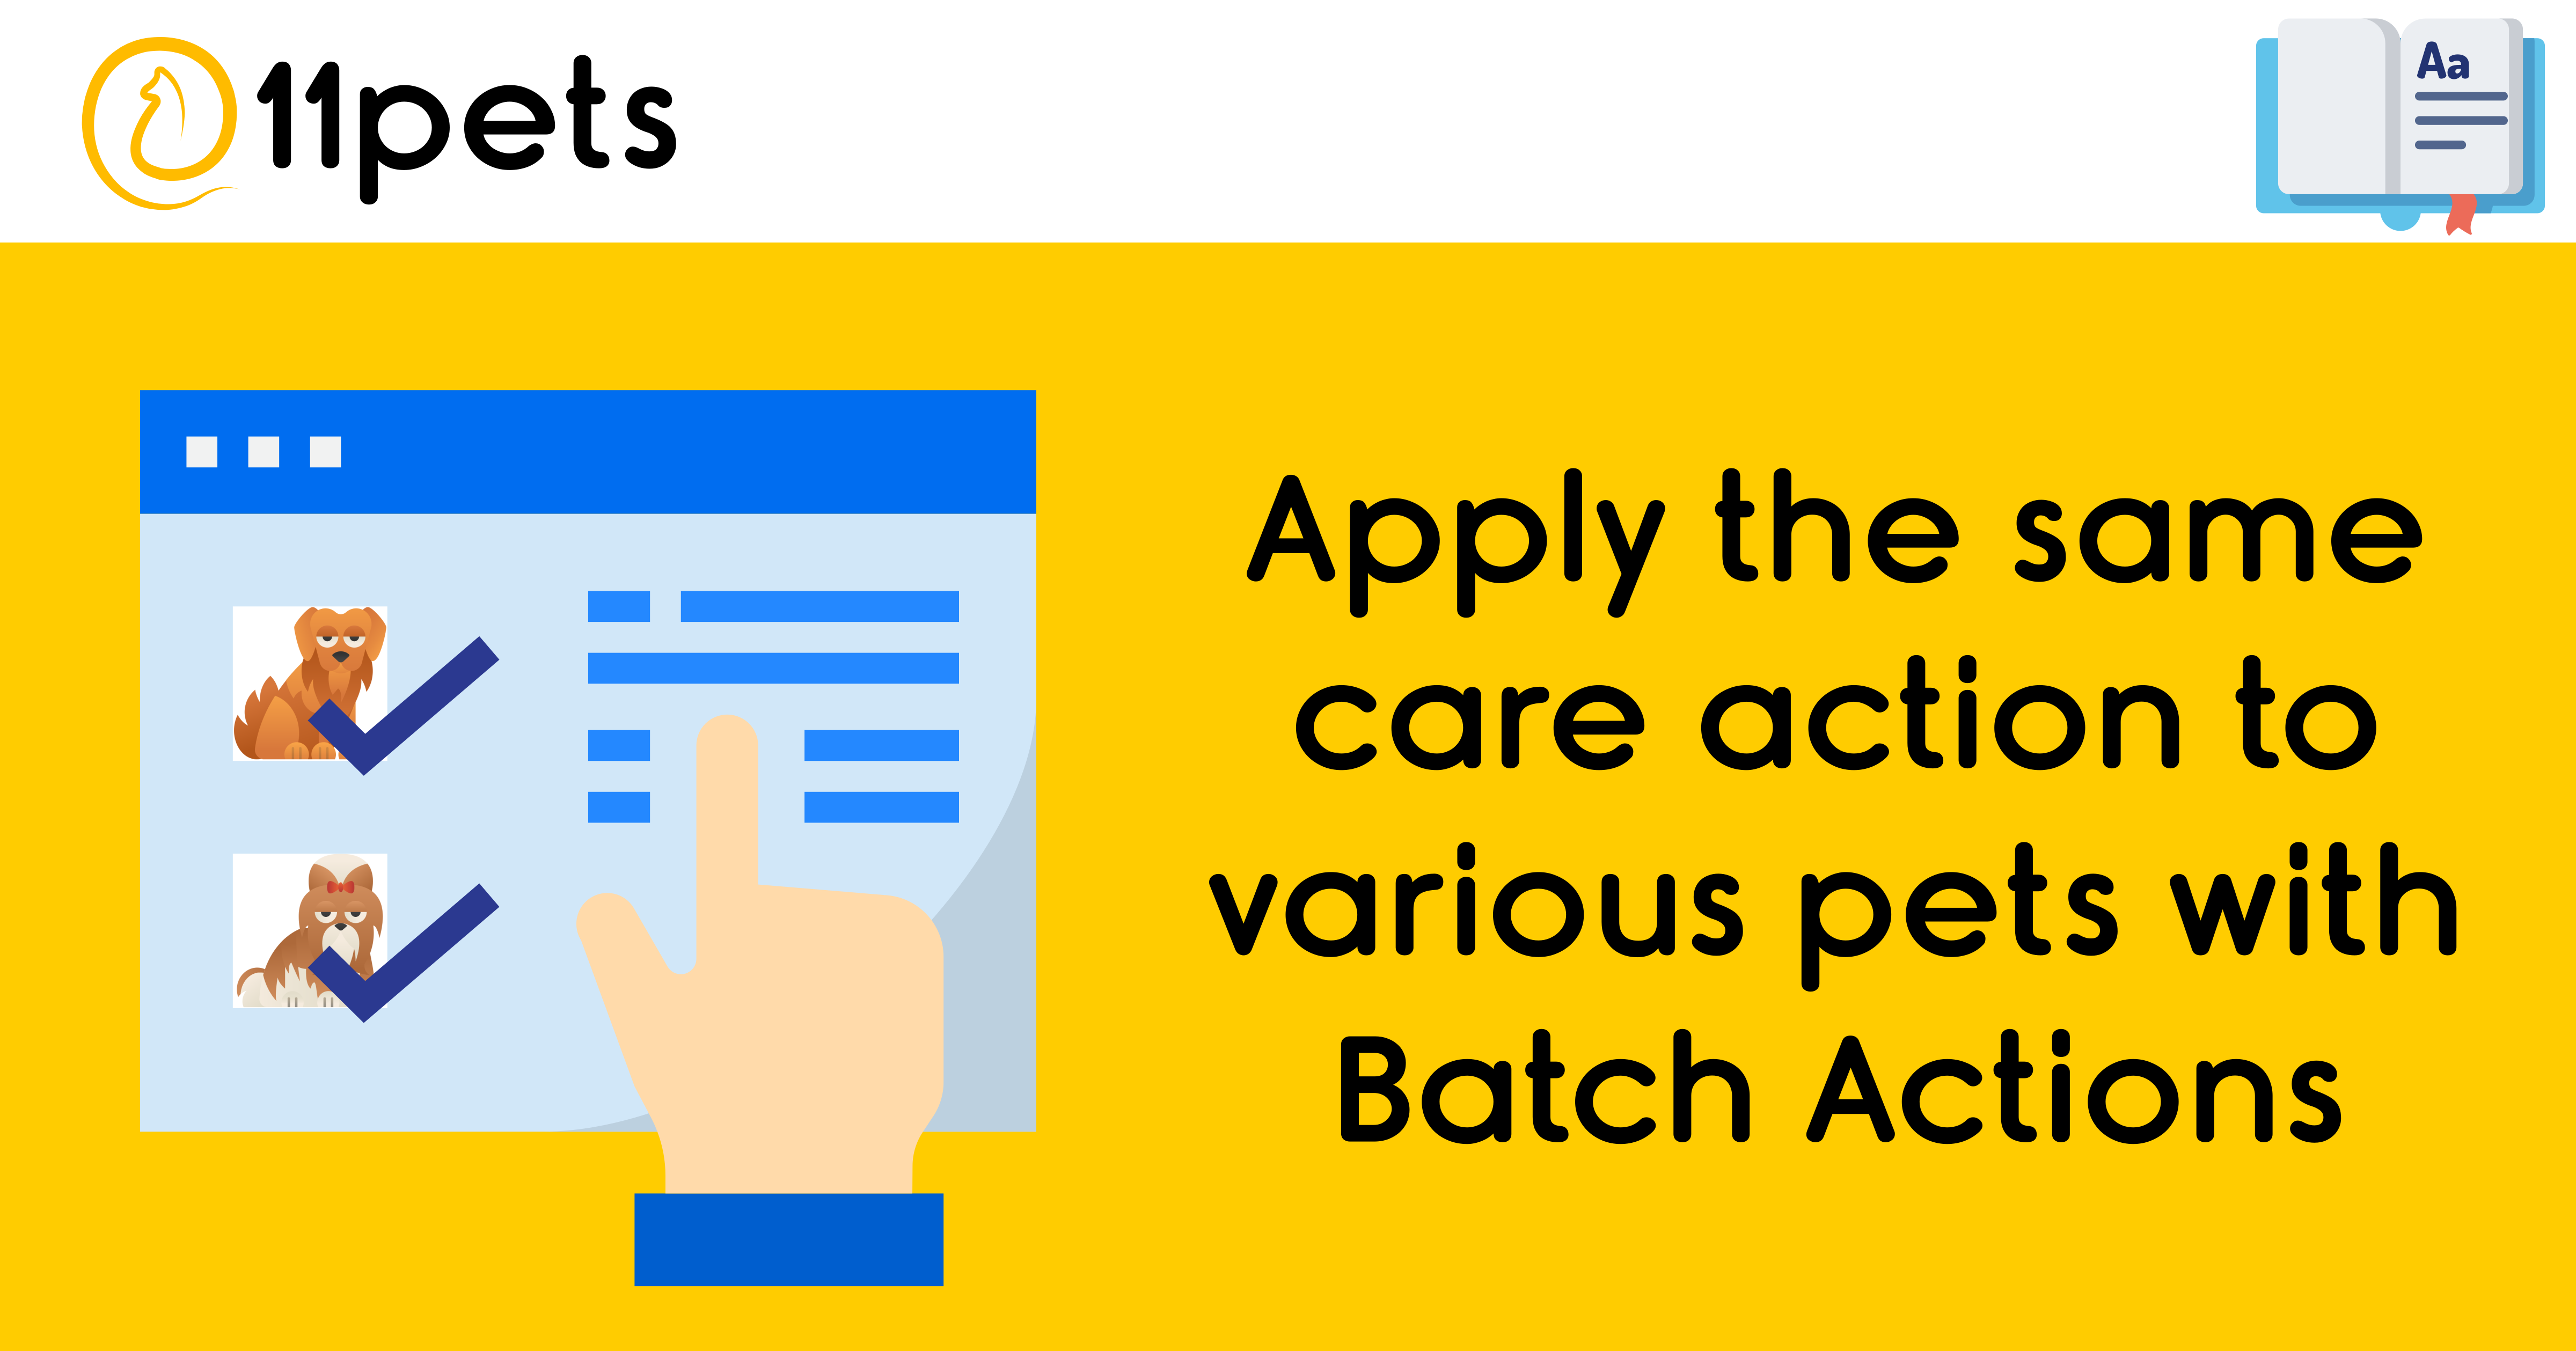 Batch Actions - Apply the same care action to various pets at once and save time